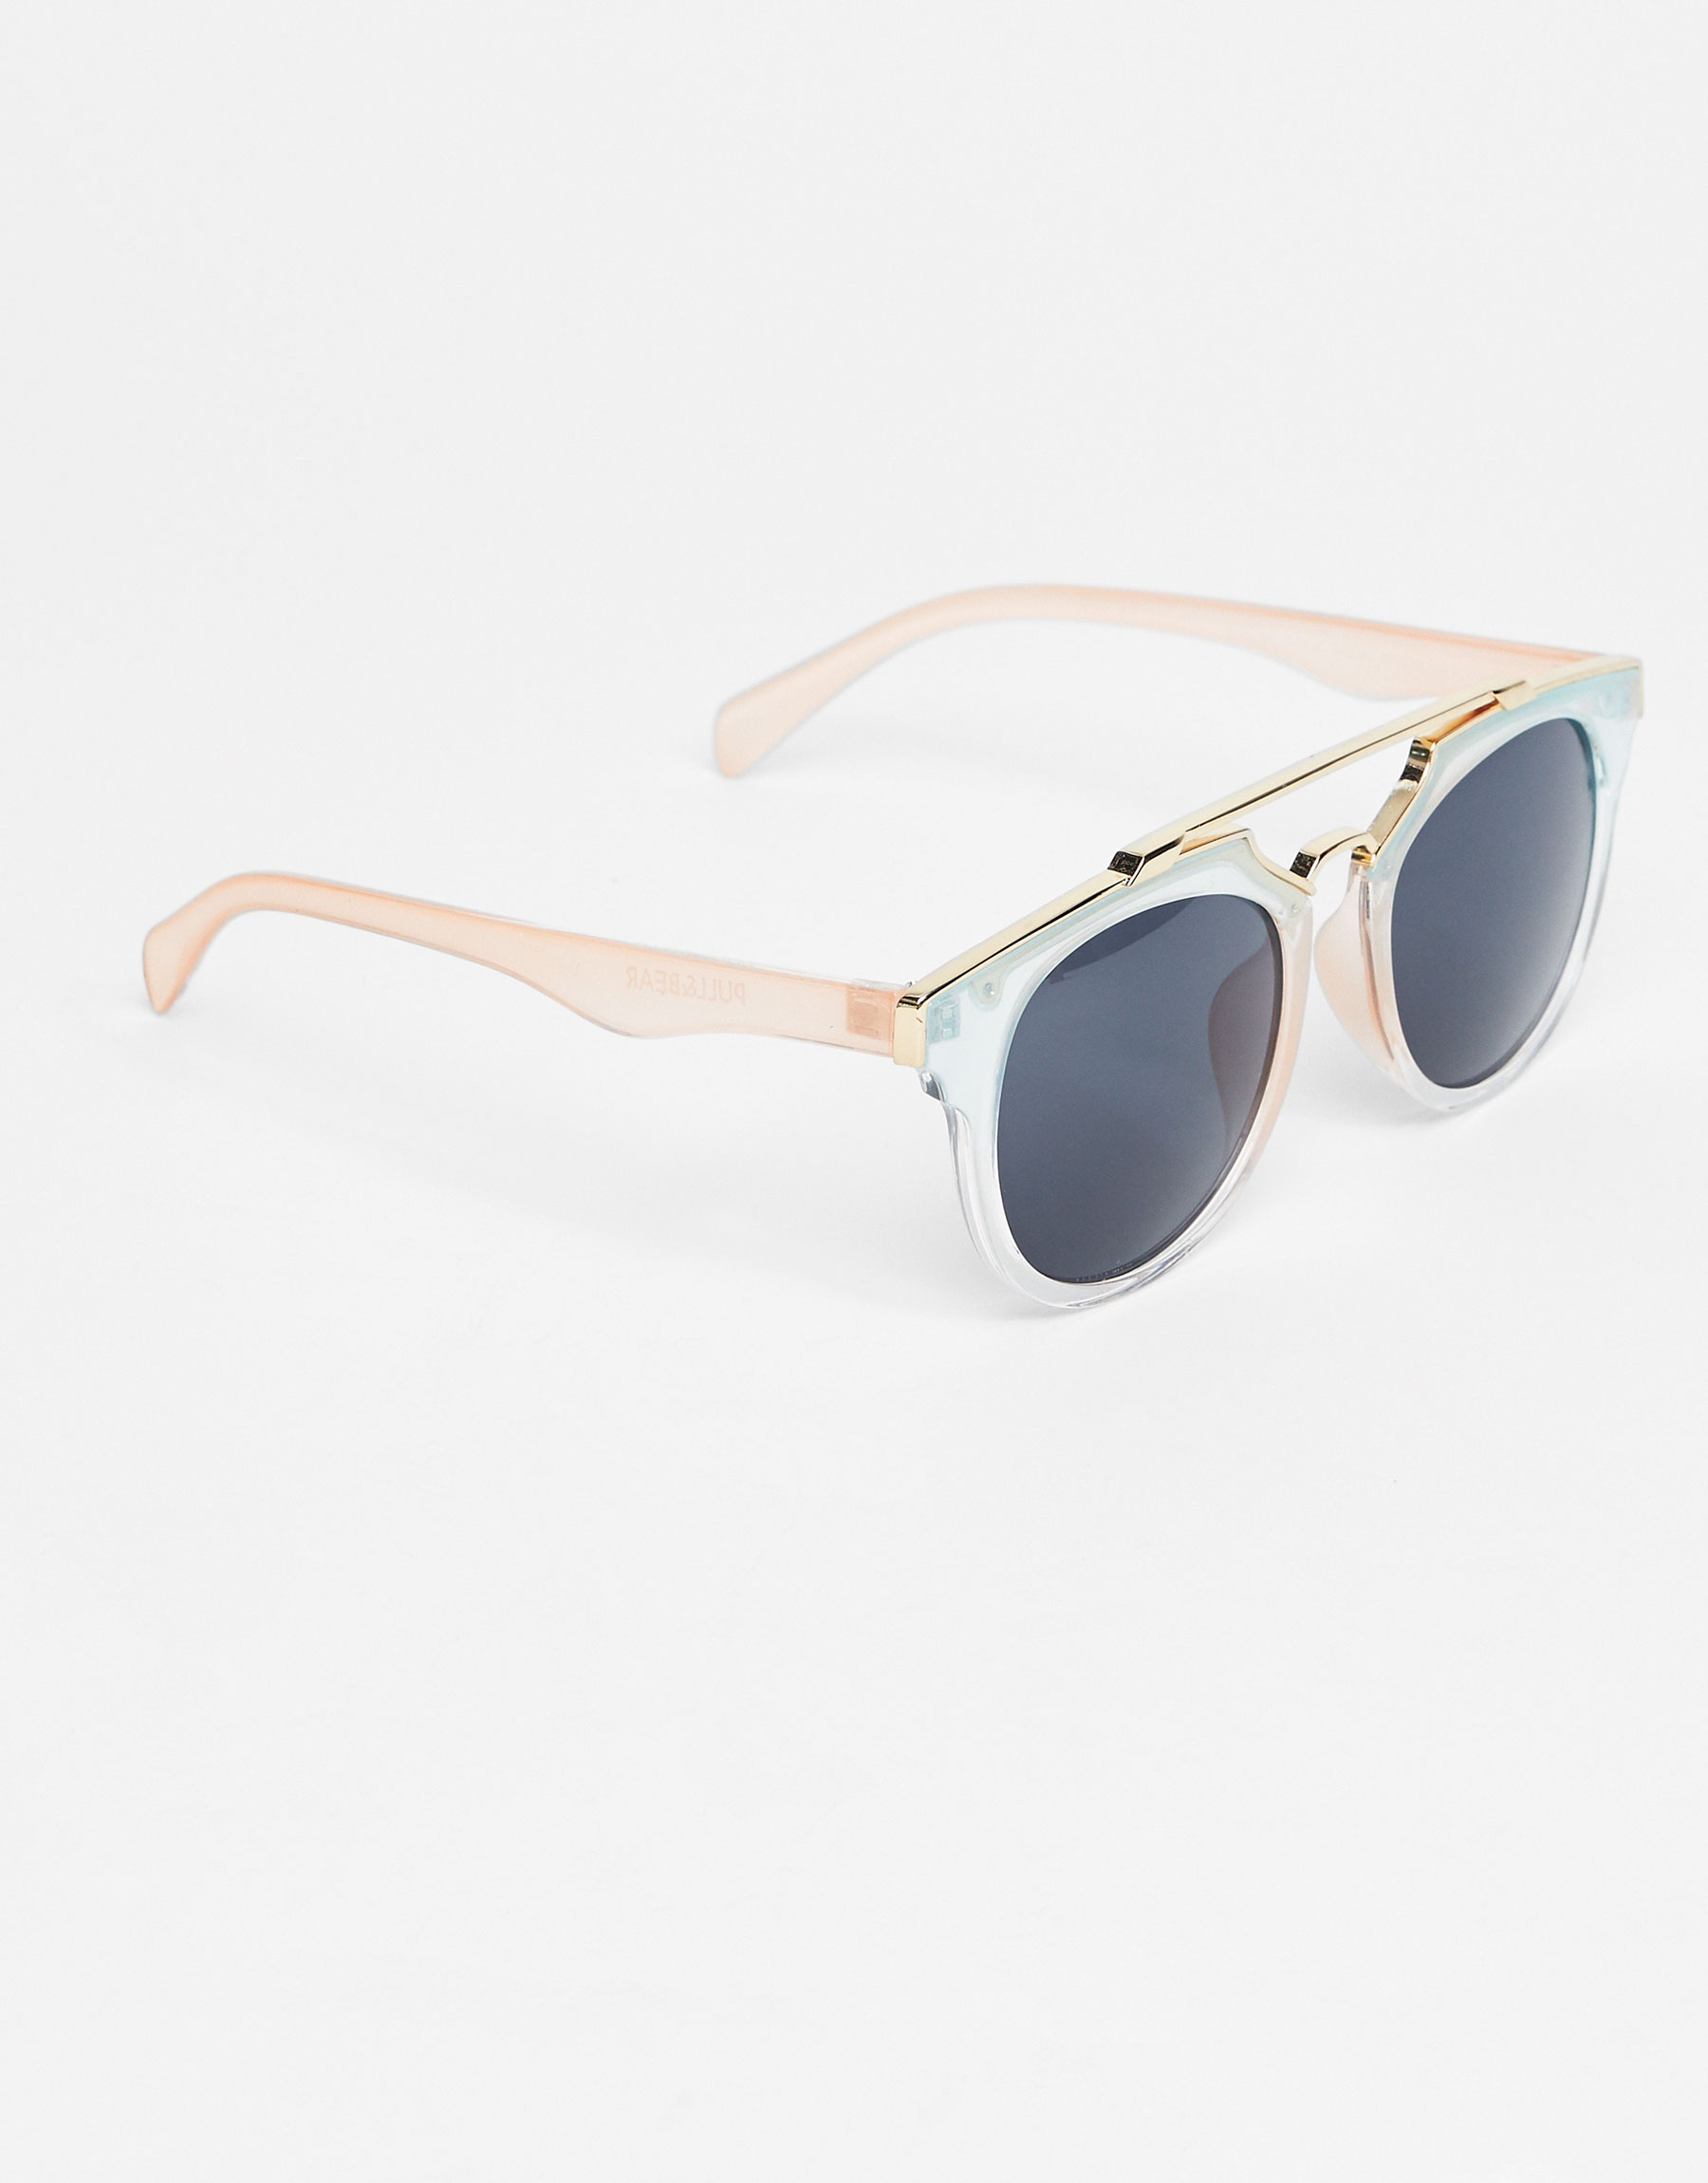 Transparent sunglasses with metallic bridge